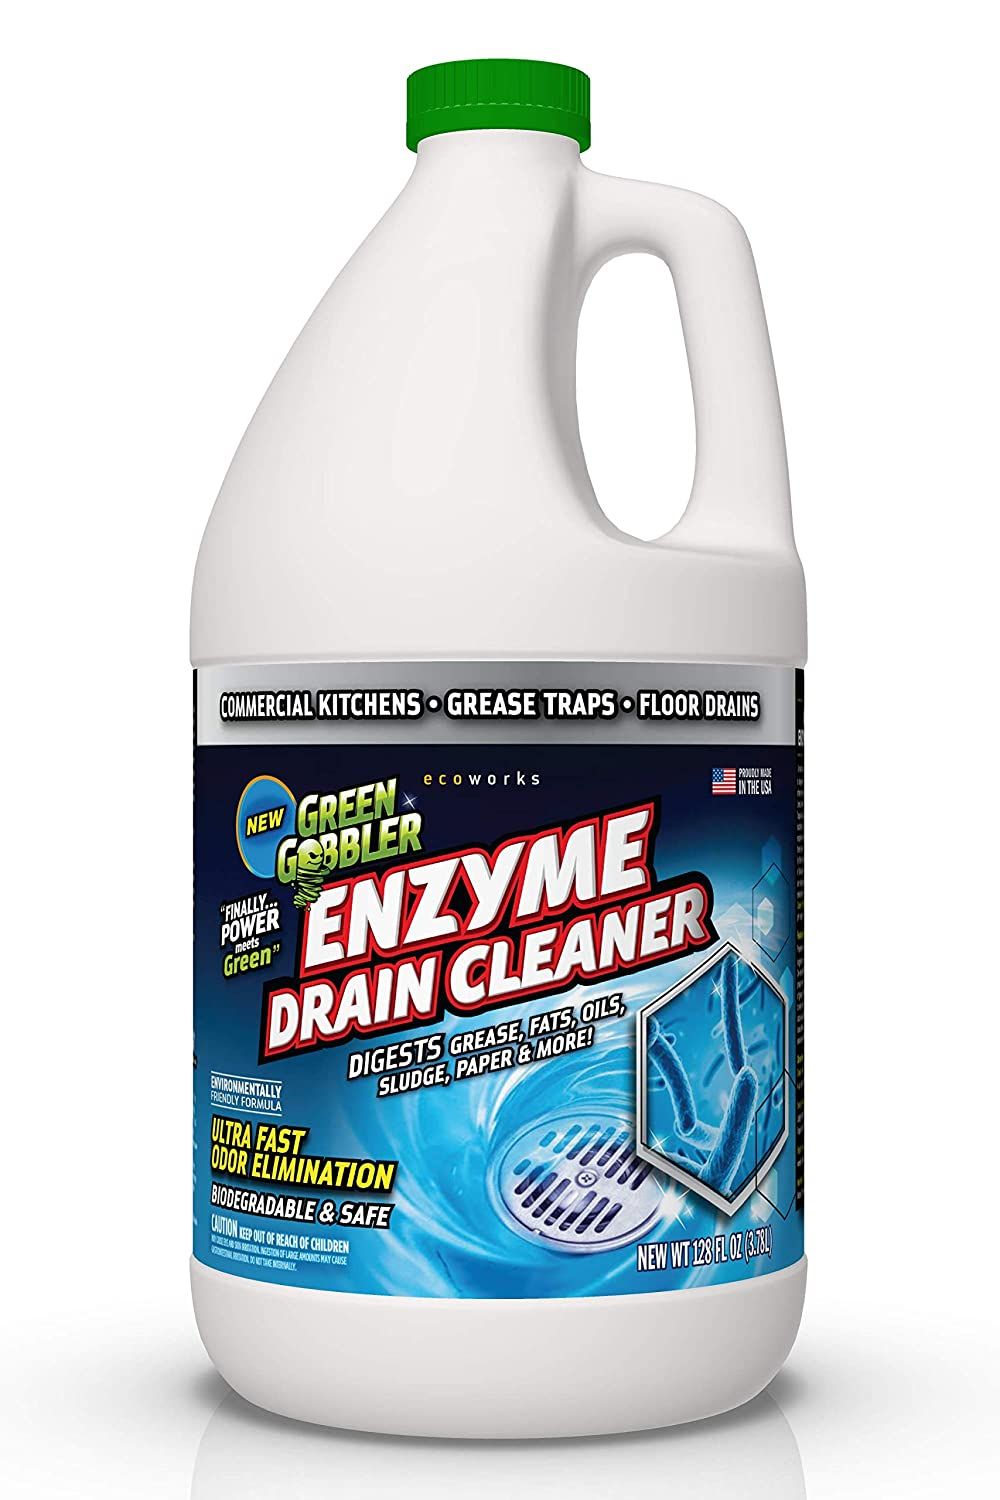 Green Gobbler ENZYMES for Grease Trap & Sewer - Controls Foul Odors & Breaks Down Grease, Paper, Fat & Oil in Sewer Lines, Septic Tanks & Grease Traps (1 Gallon)